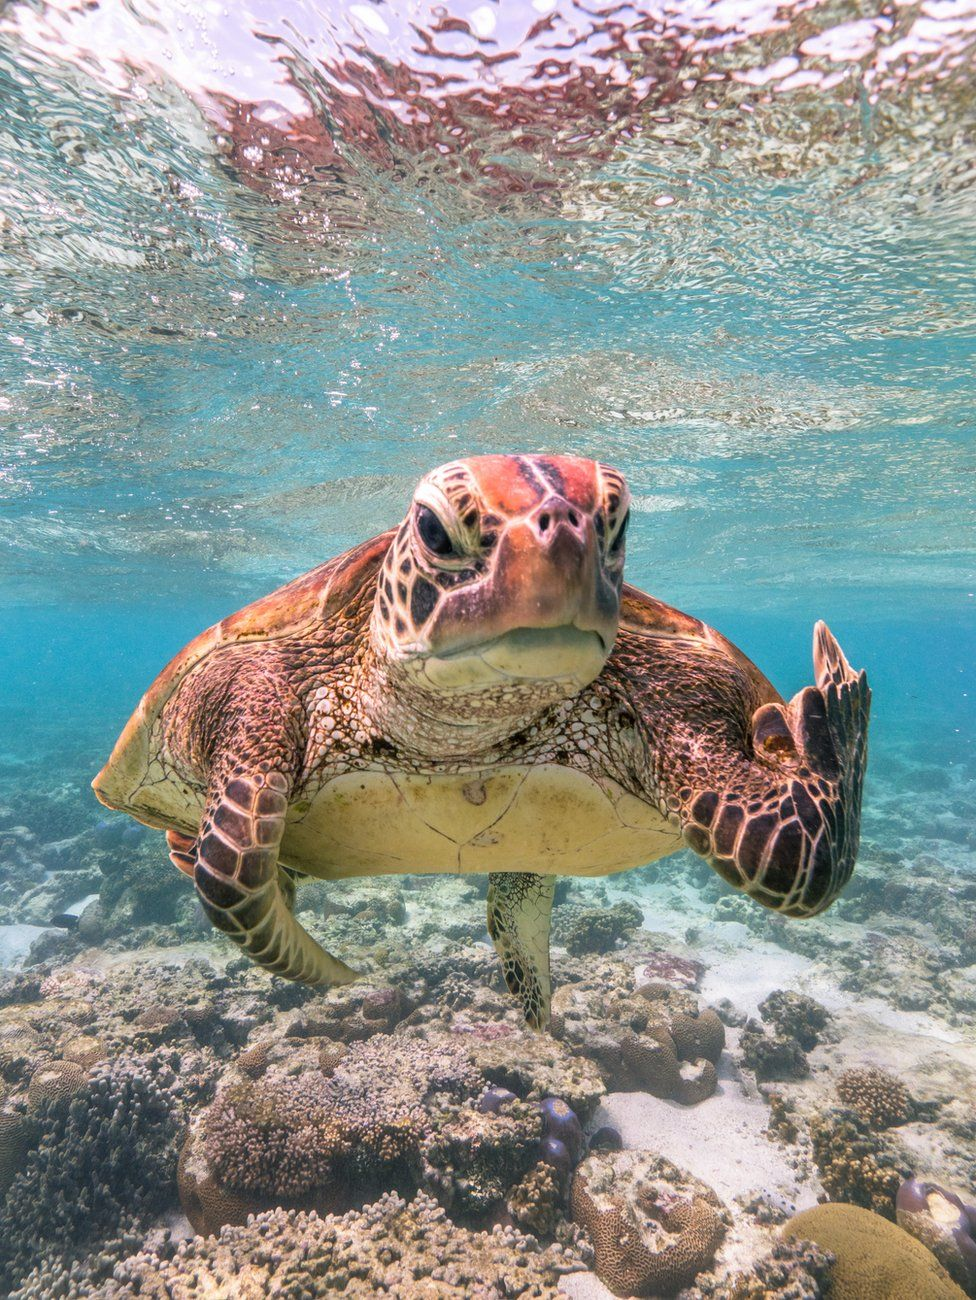 A turtle appearing to be gesticulating at the camera